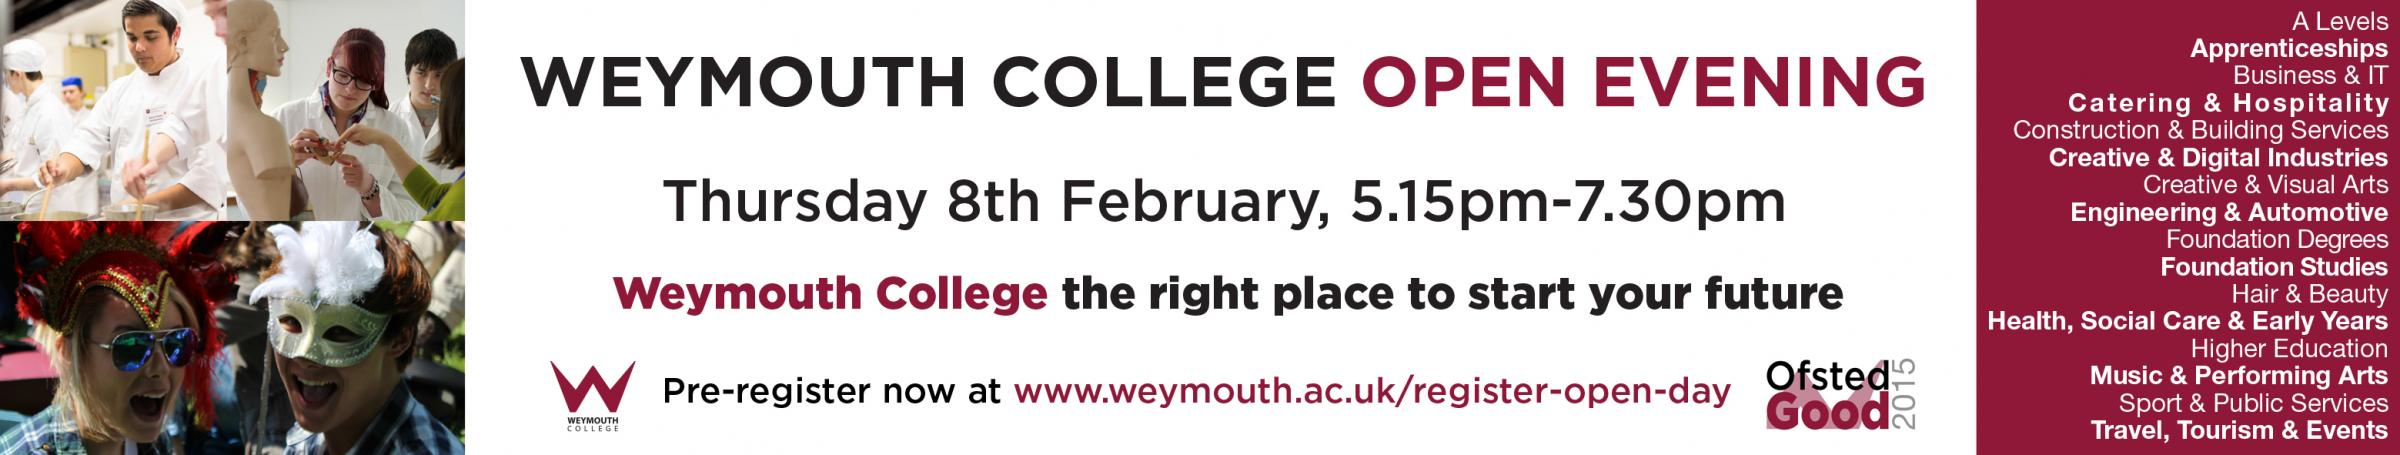 Weymouth College Open Evening